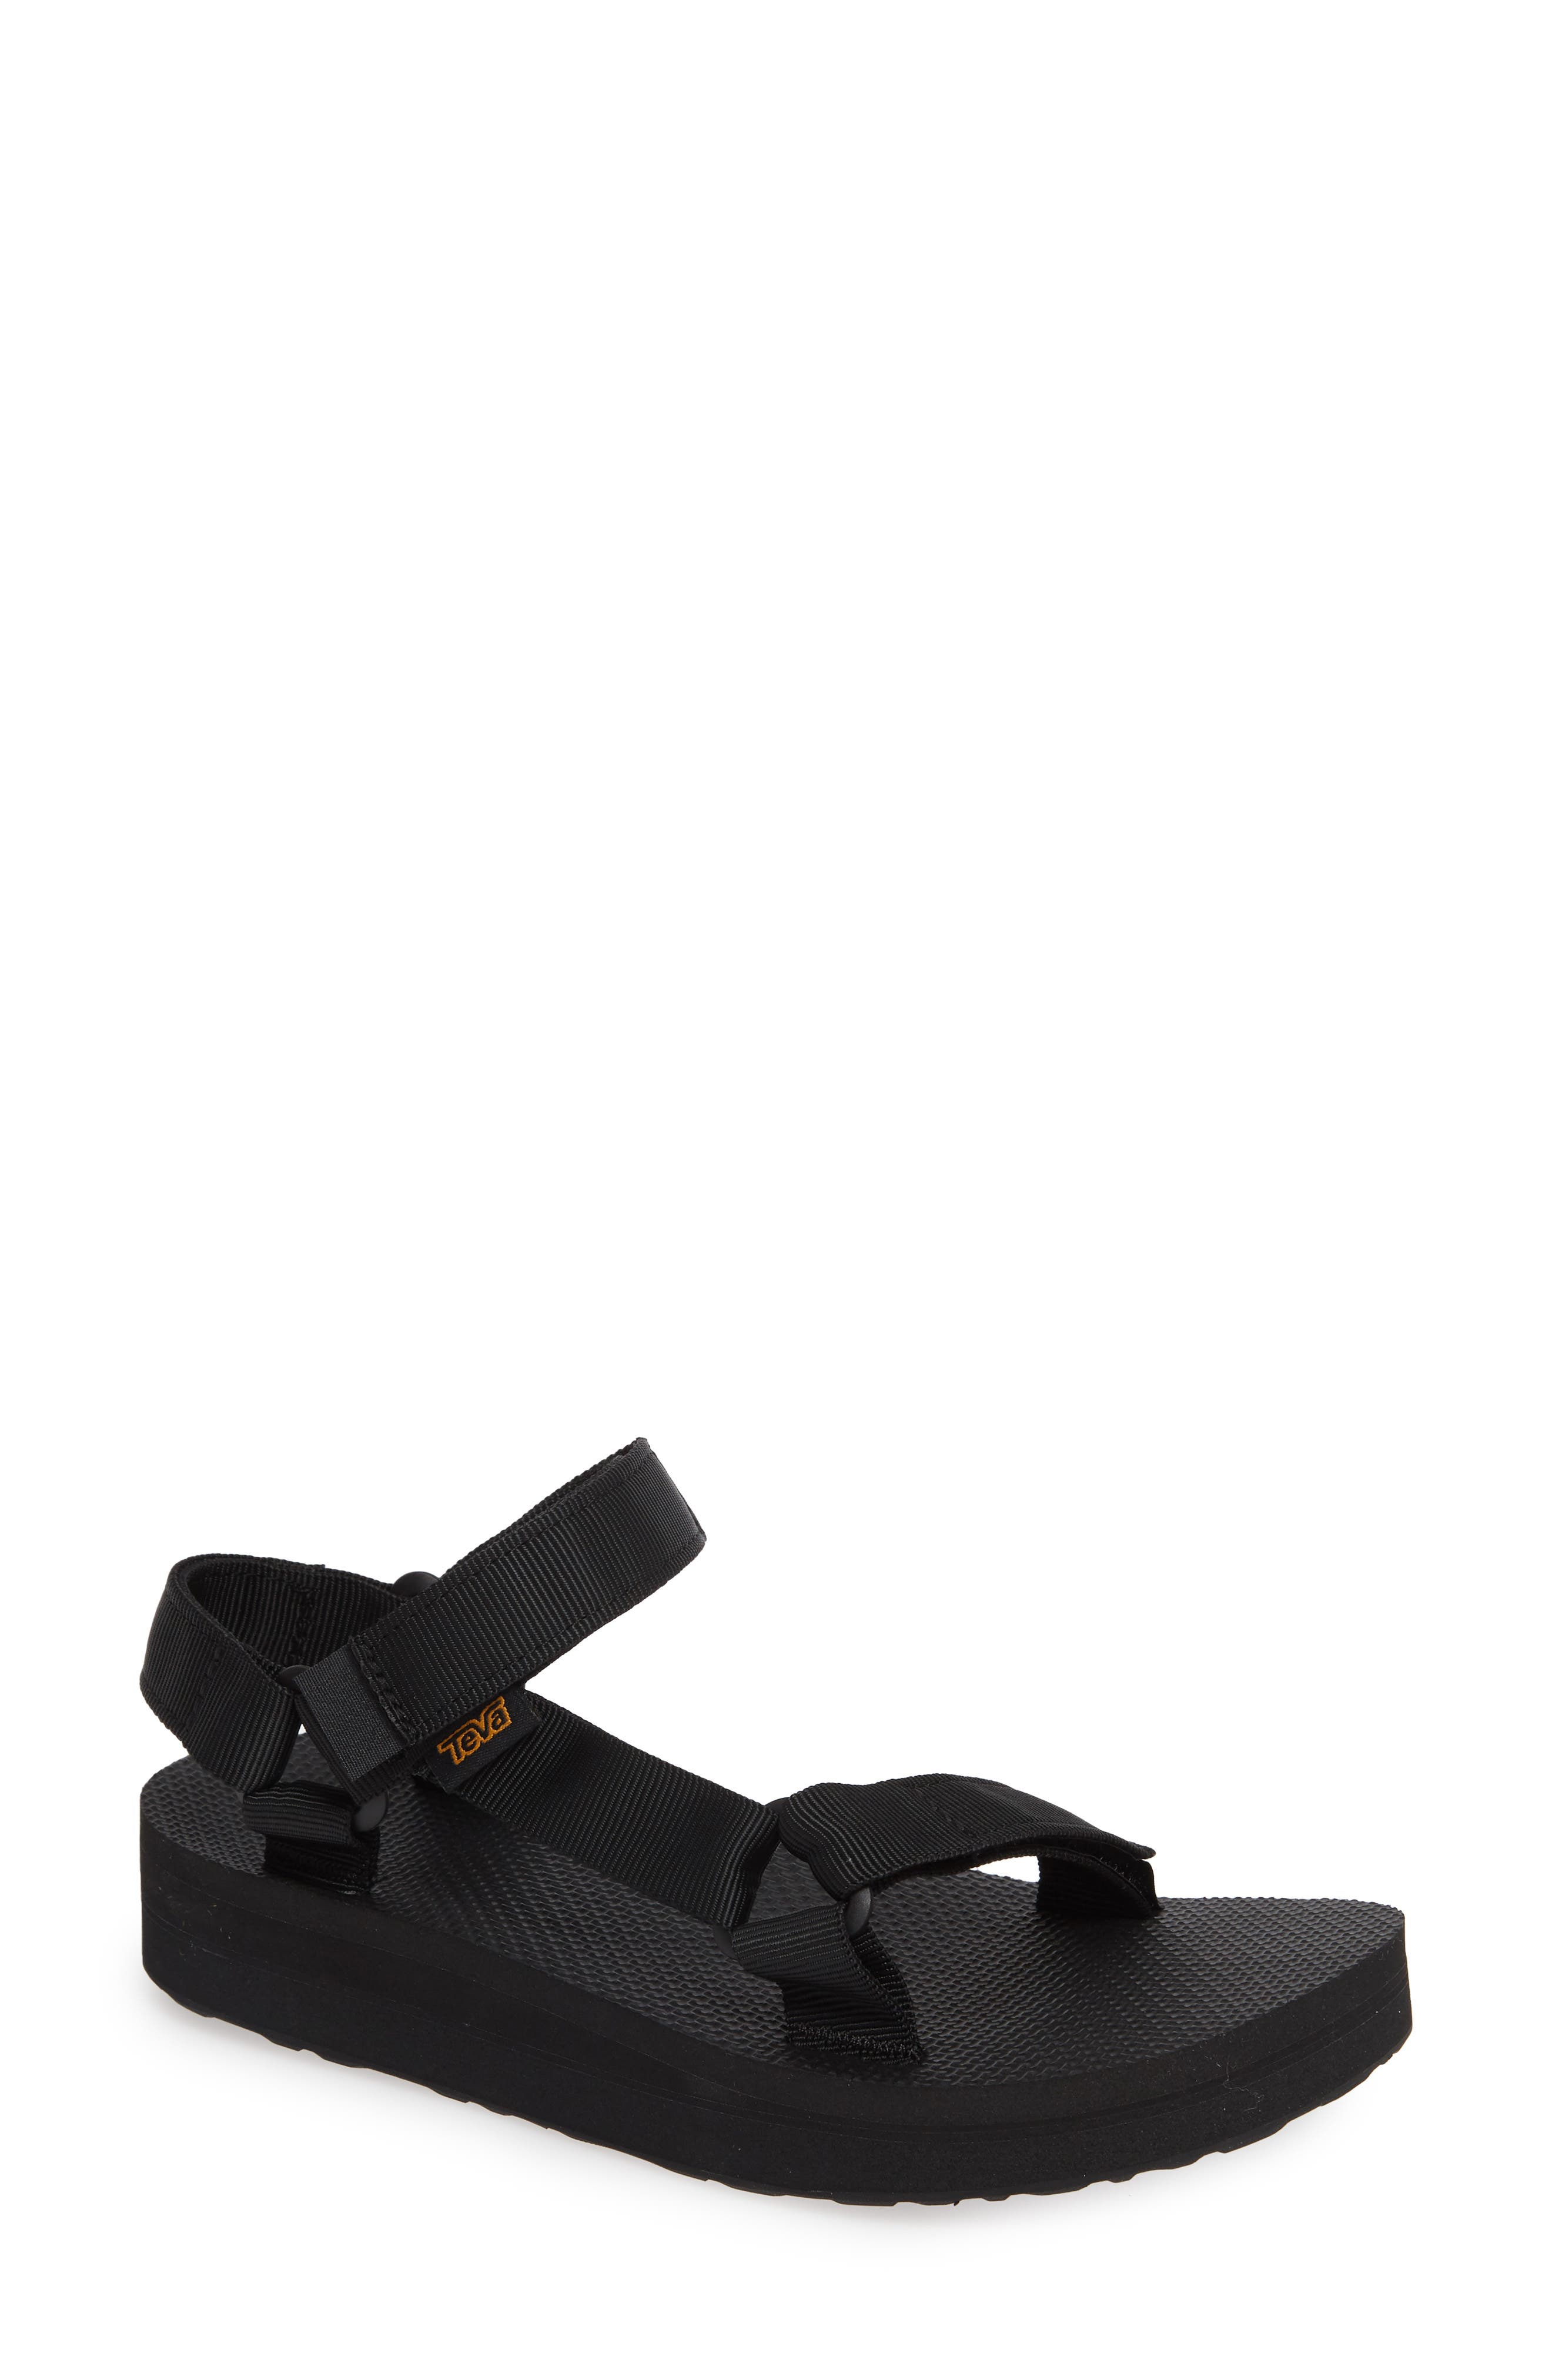 Midform Universal Geometric Sandal,                         Main,                         color, BLACK FABRIC